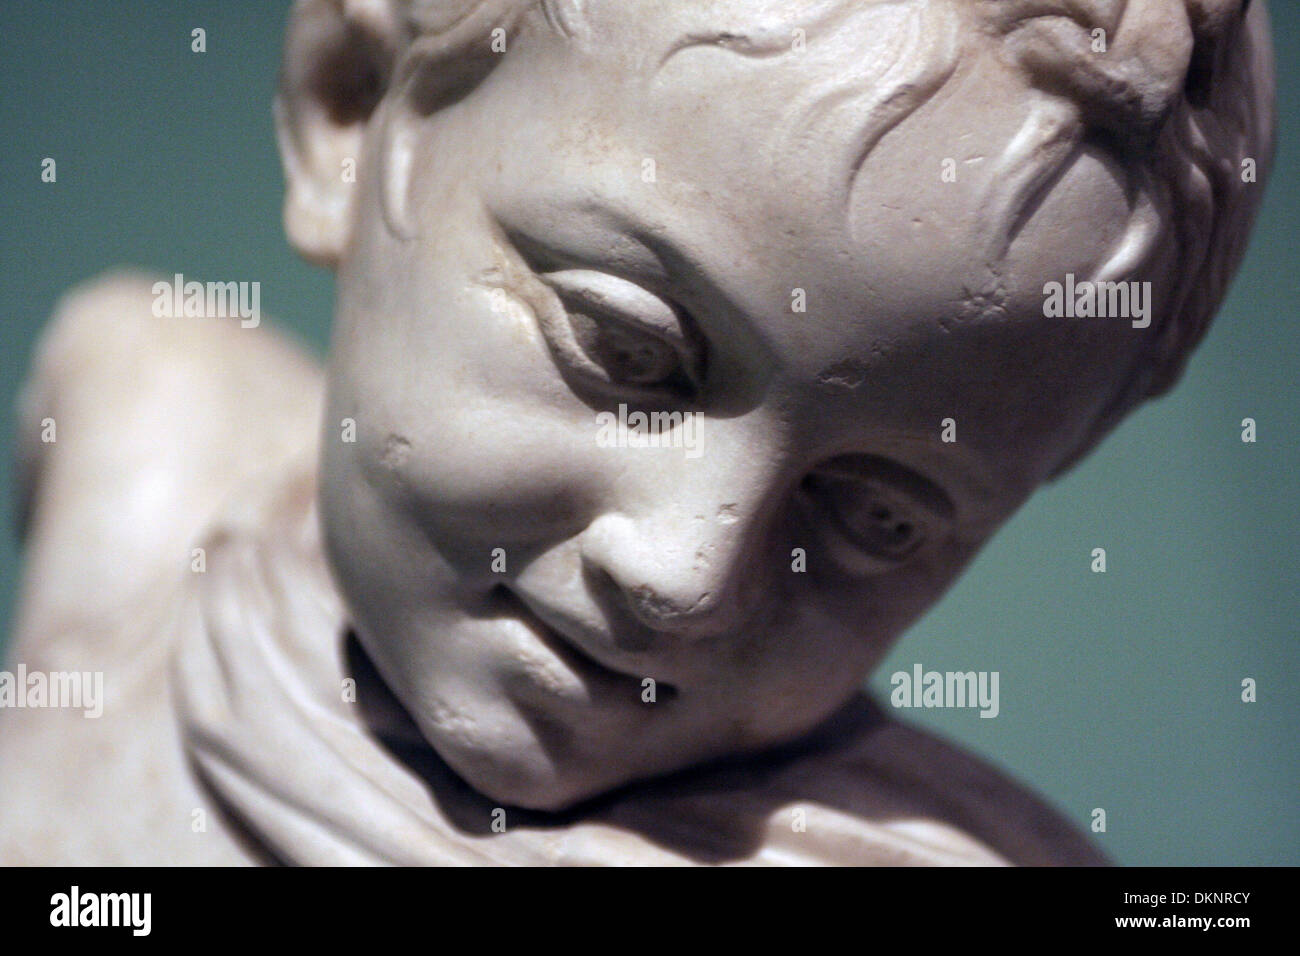 centrale montemartini child particular - Stock Image